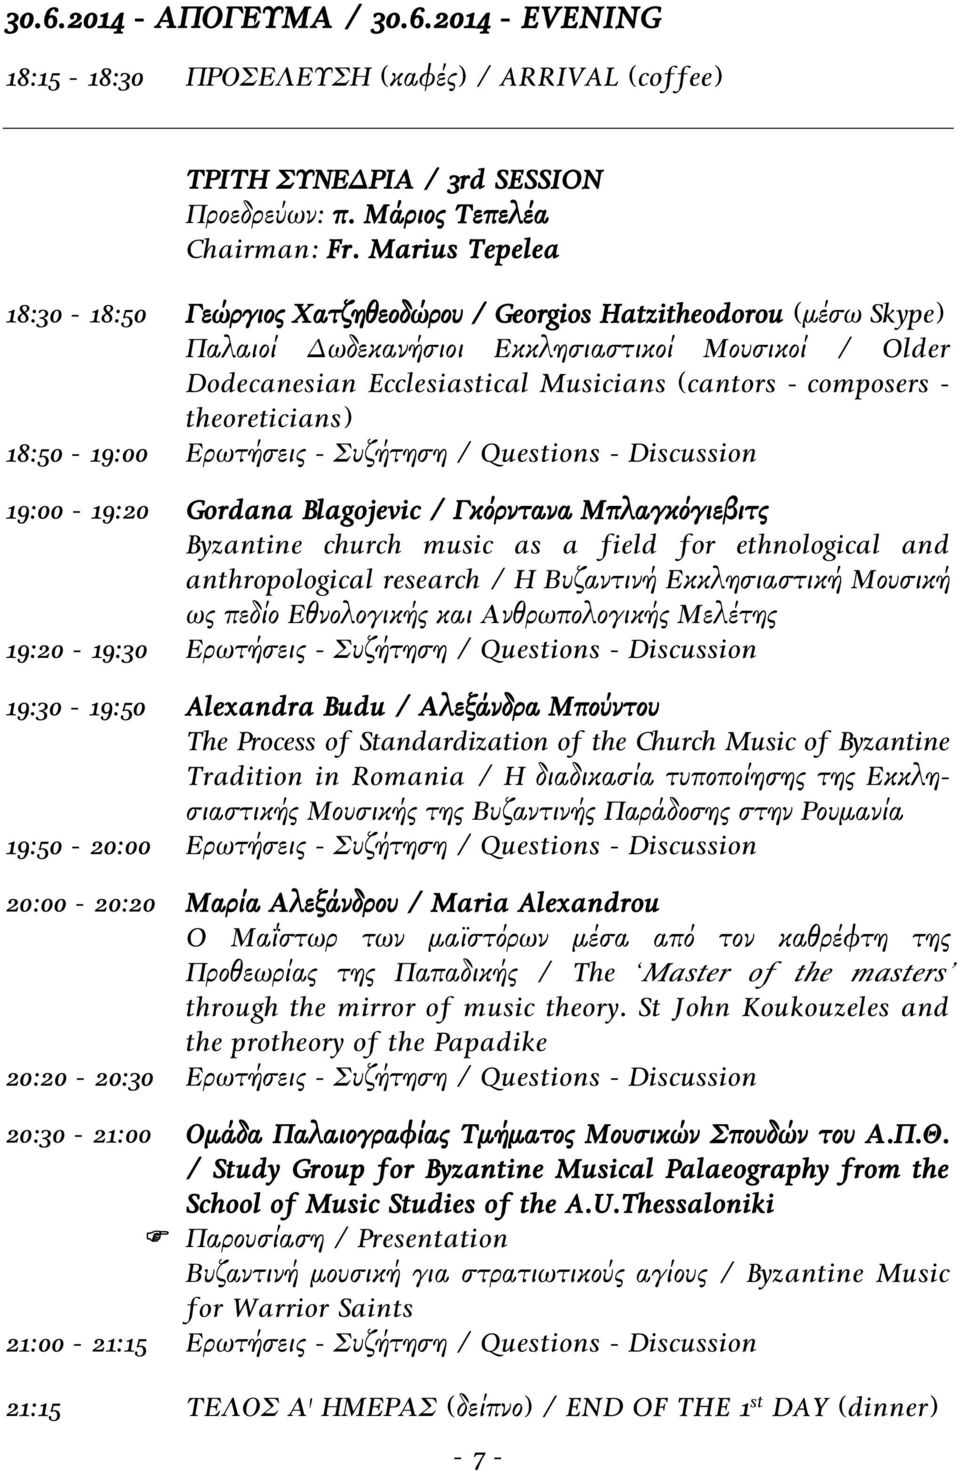 composers - theoreticians) 18:50-19:00 Ερωτήσεις - Συζήτηση / Questions - Discussion 19:00-19:20 Gordana Blagojevic / Γκόρντανα Μπλαγκόγιεβιτς Byzantine church music as a field for ethnological and